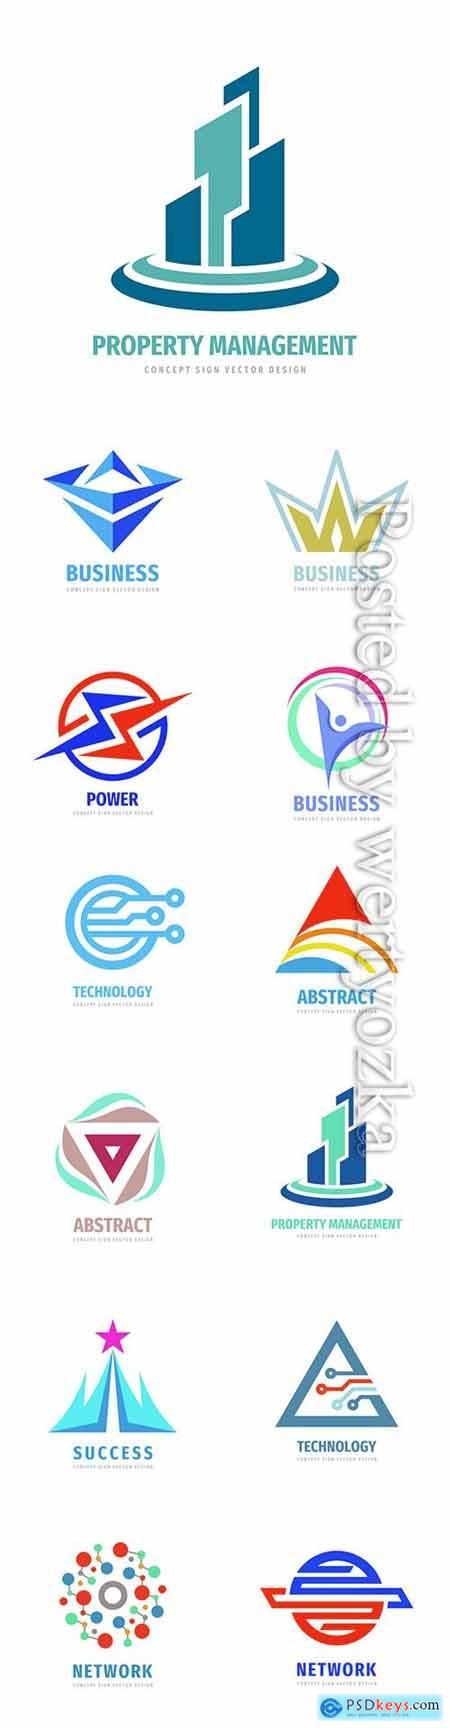 Company business logo in vector